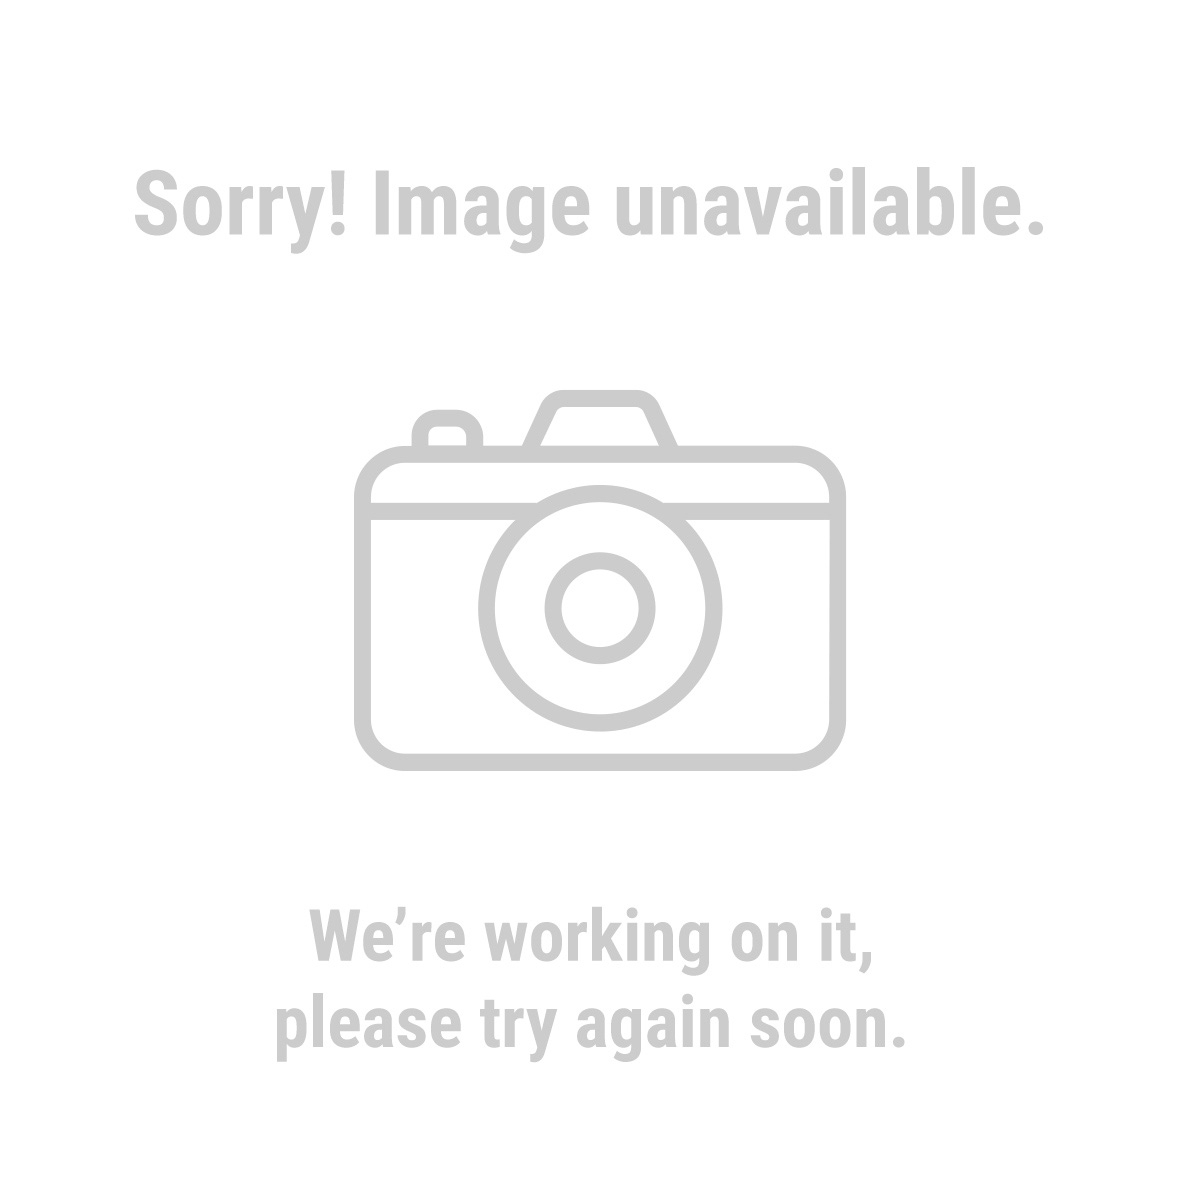 Pittsburgh 62570 6 Pc Screwdriver Set